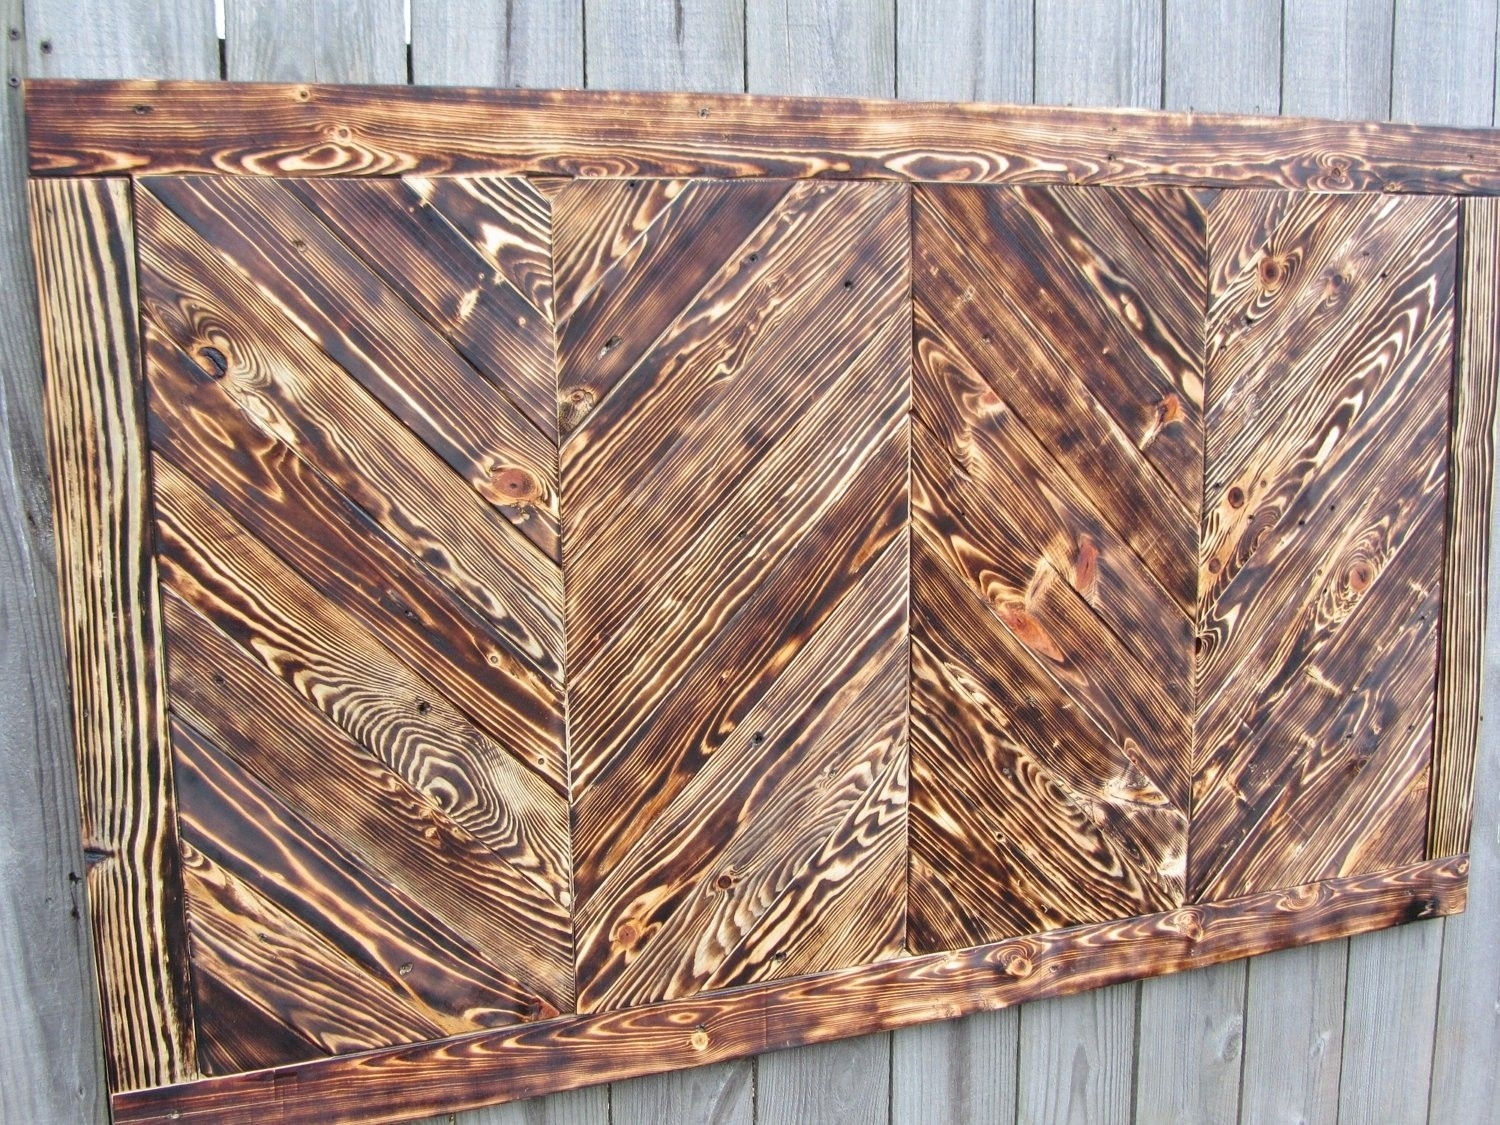 Hand Crafted Chevron Wood Wall Art Made From Reclaimed Pallet Wood With 2017 Personalized Wood Wall Art (Gallery 19 of 20)